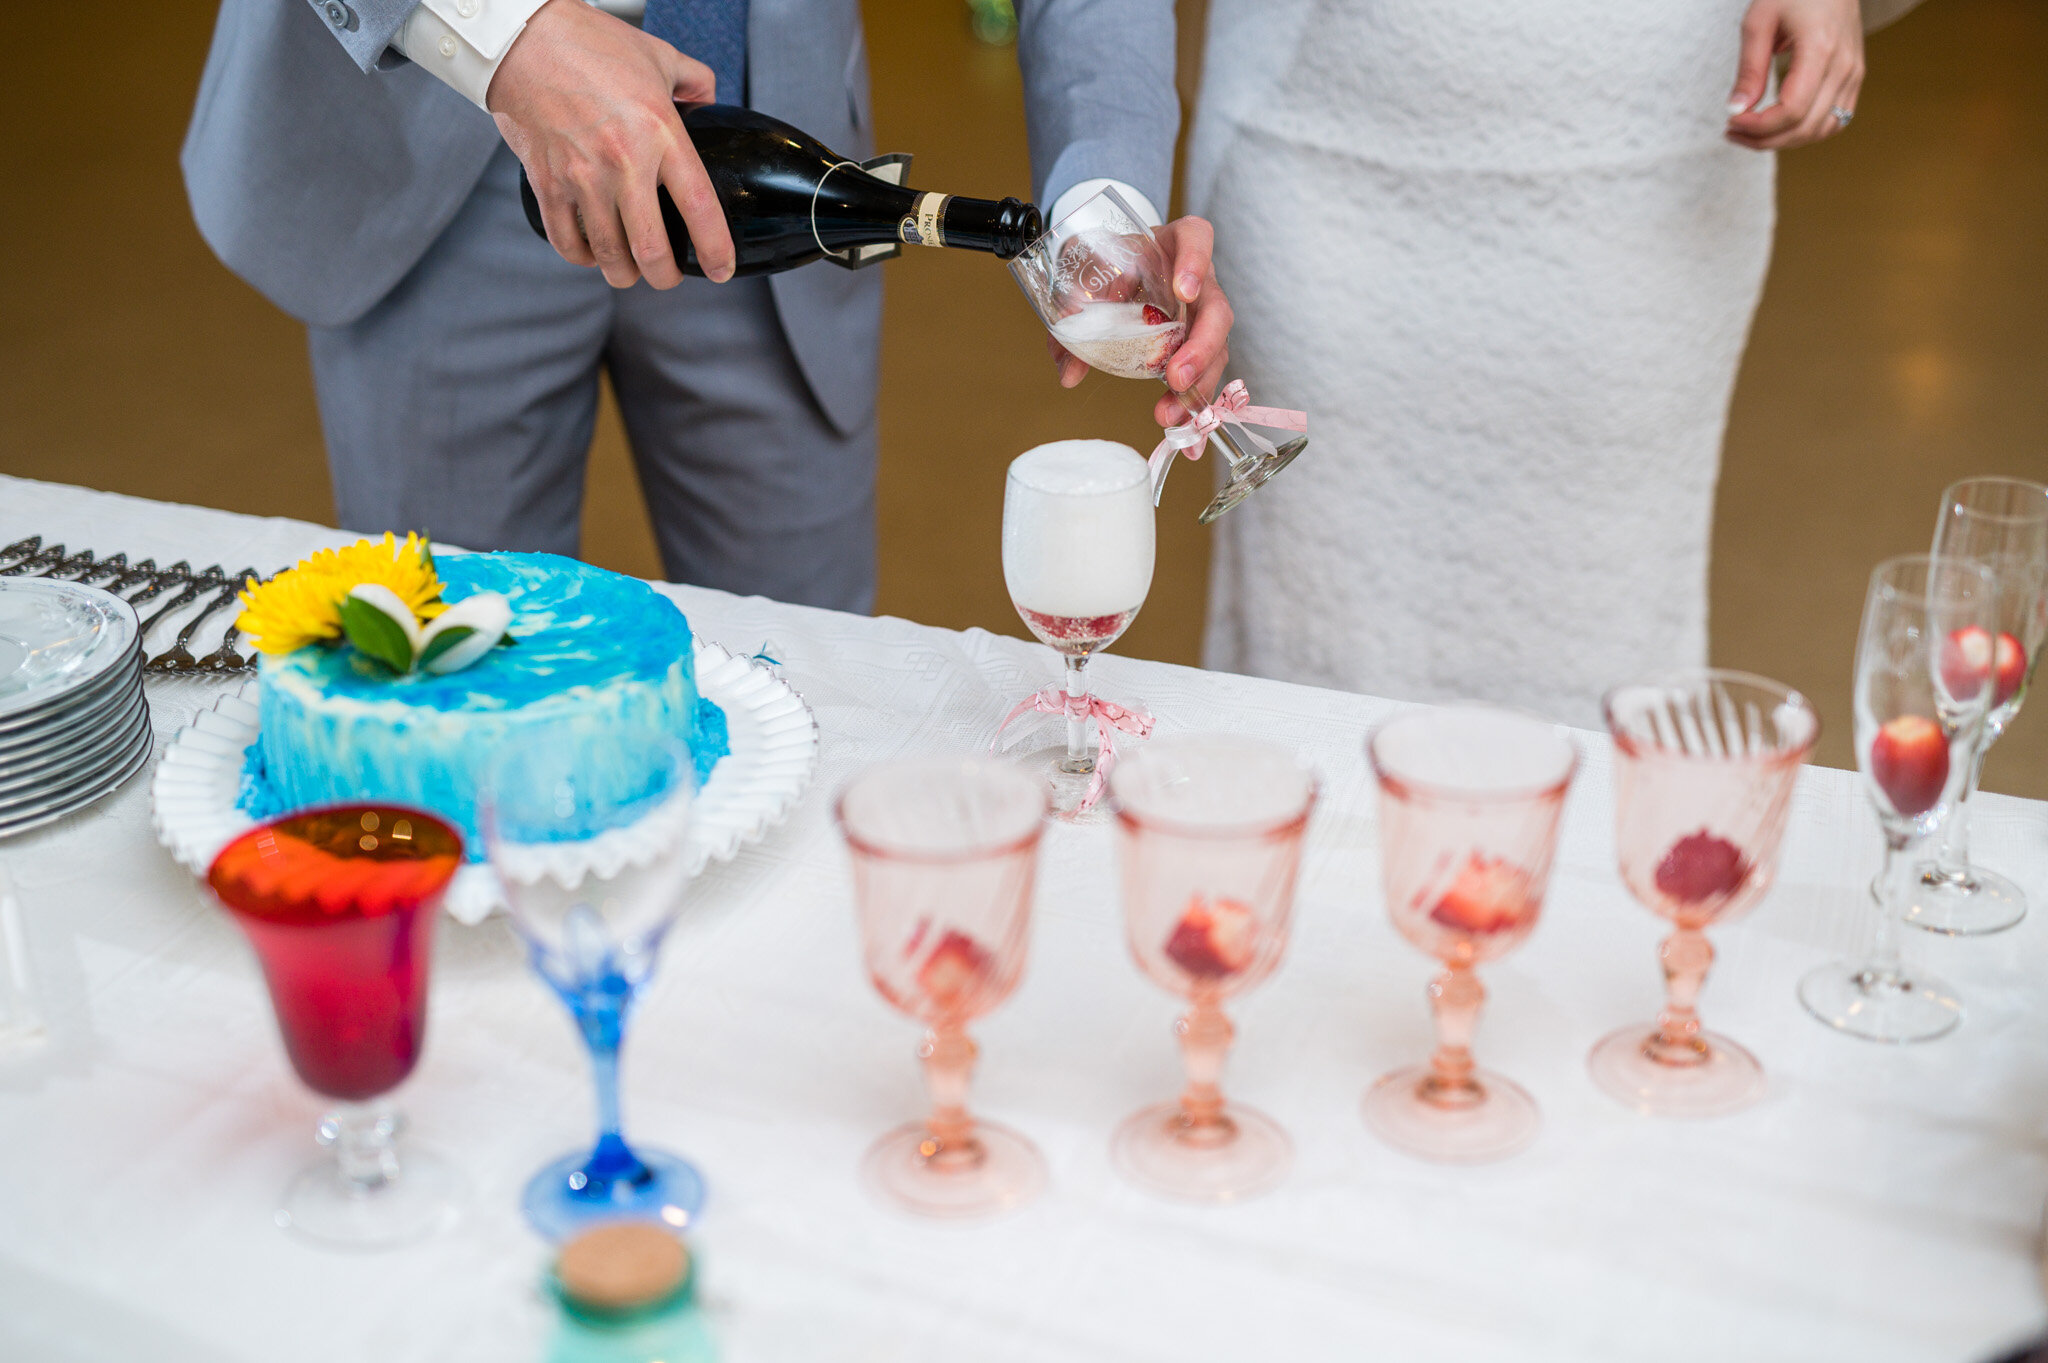 Wedding reception toasts during COVID19 outbreak